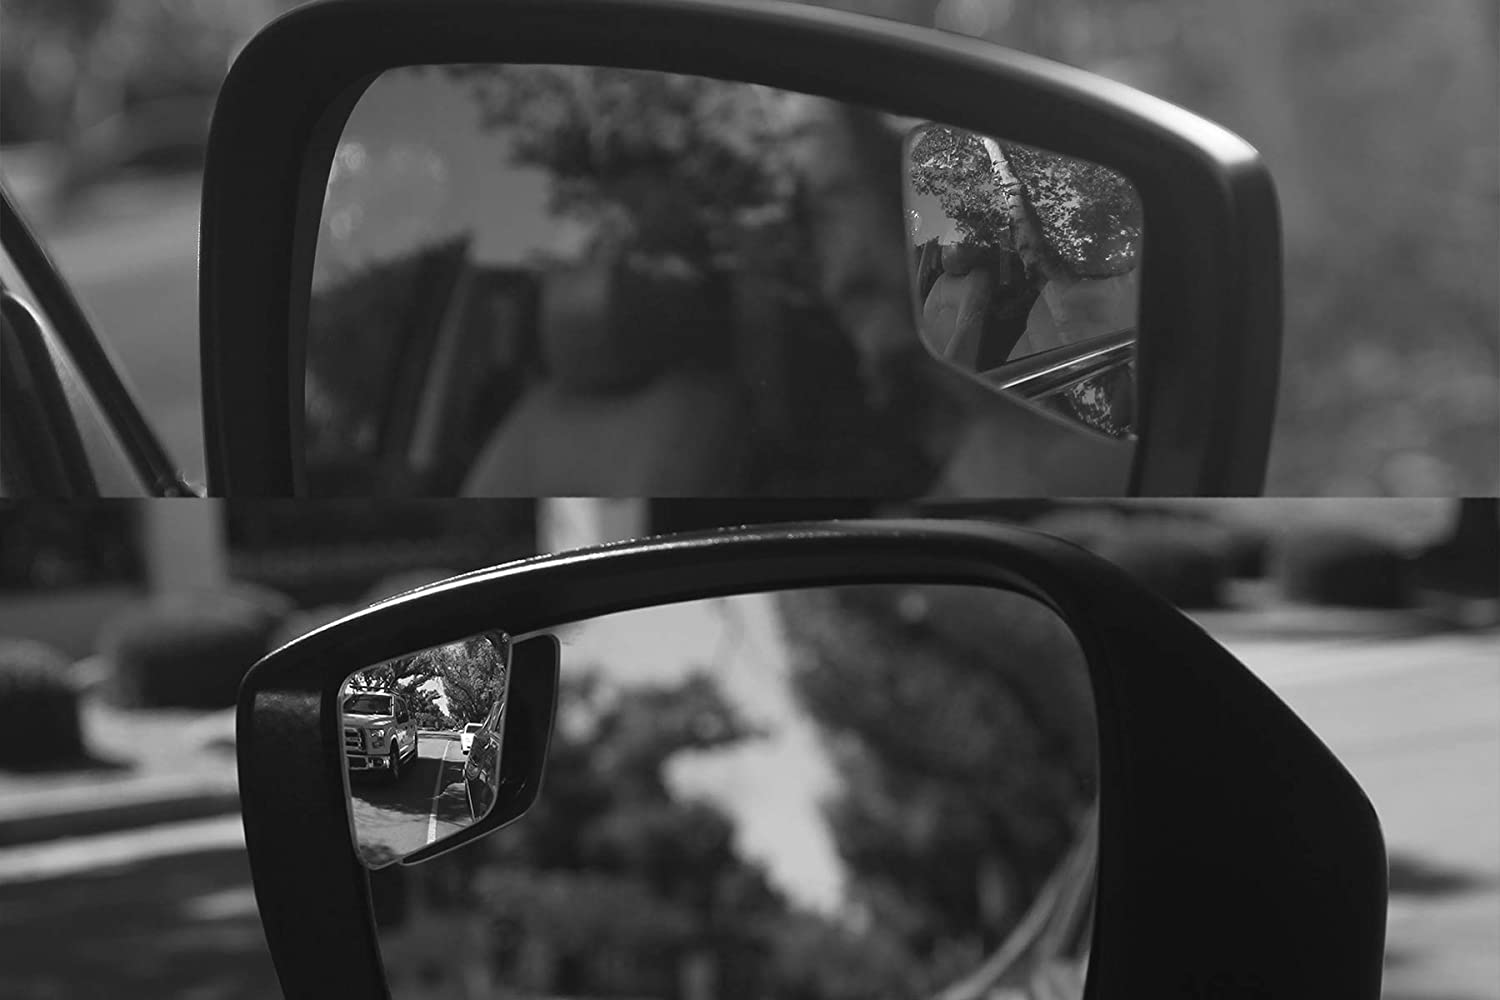 Convex Mirror Seamlessly Contours to Your Cars Side Mirror Easy Installation Rhombus 4 Blindspot Mirror by Safe View Company HD Glass Safer Lane Changes 63x50mm Frameless Design 2 Pack